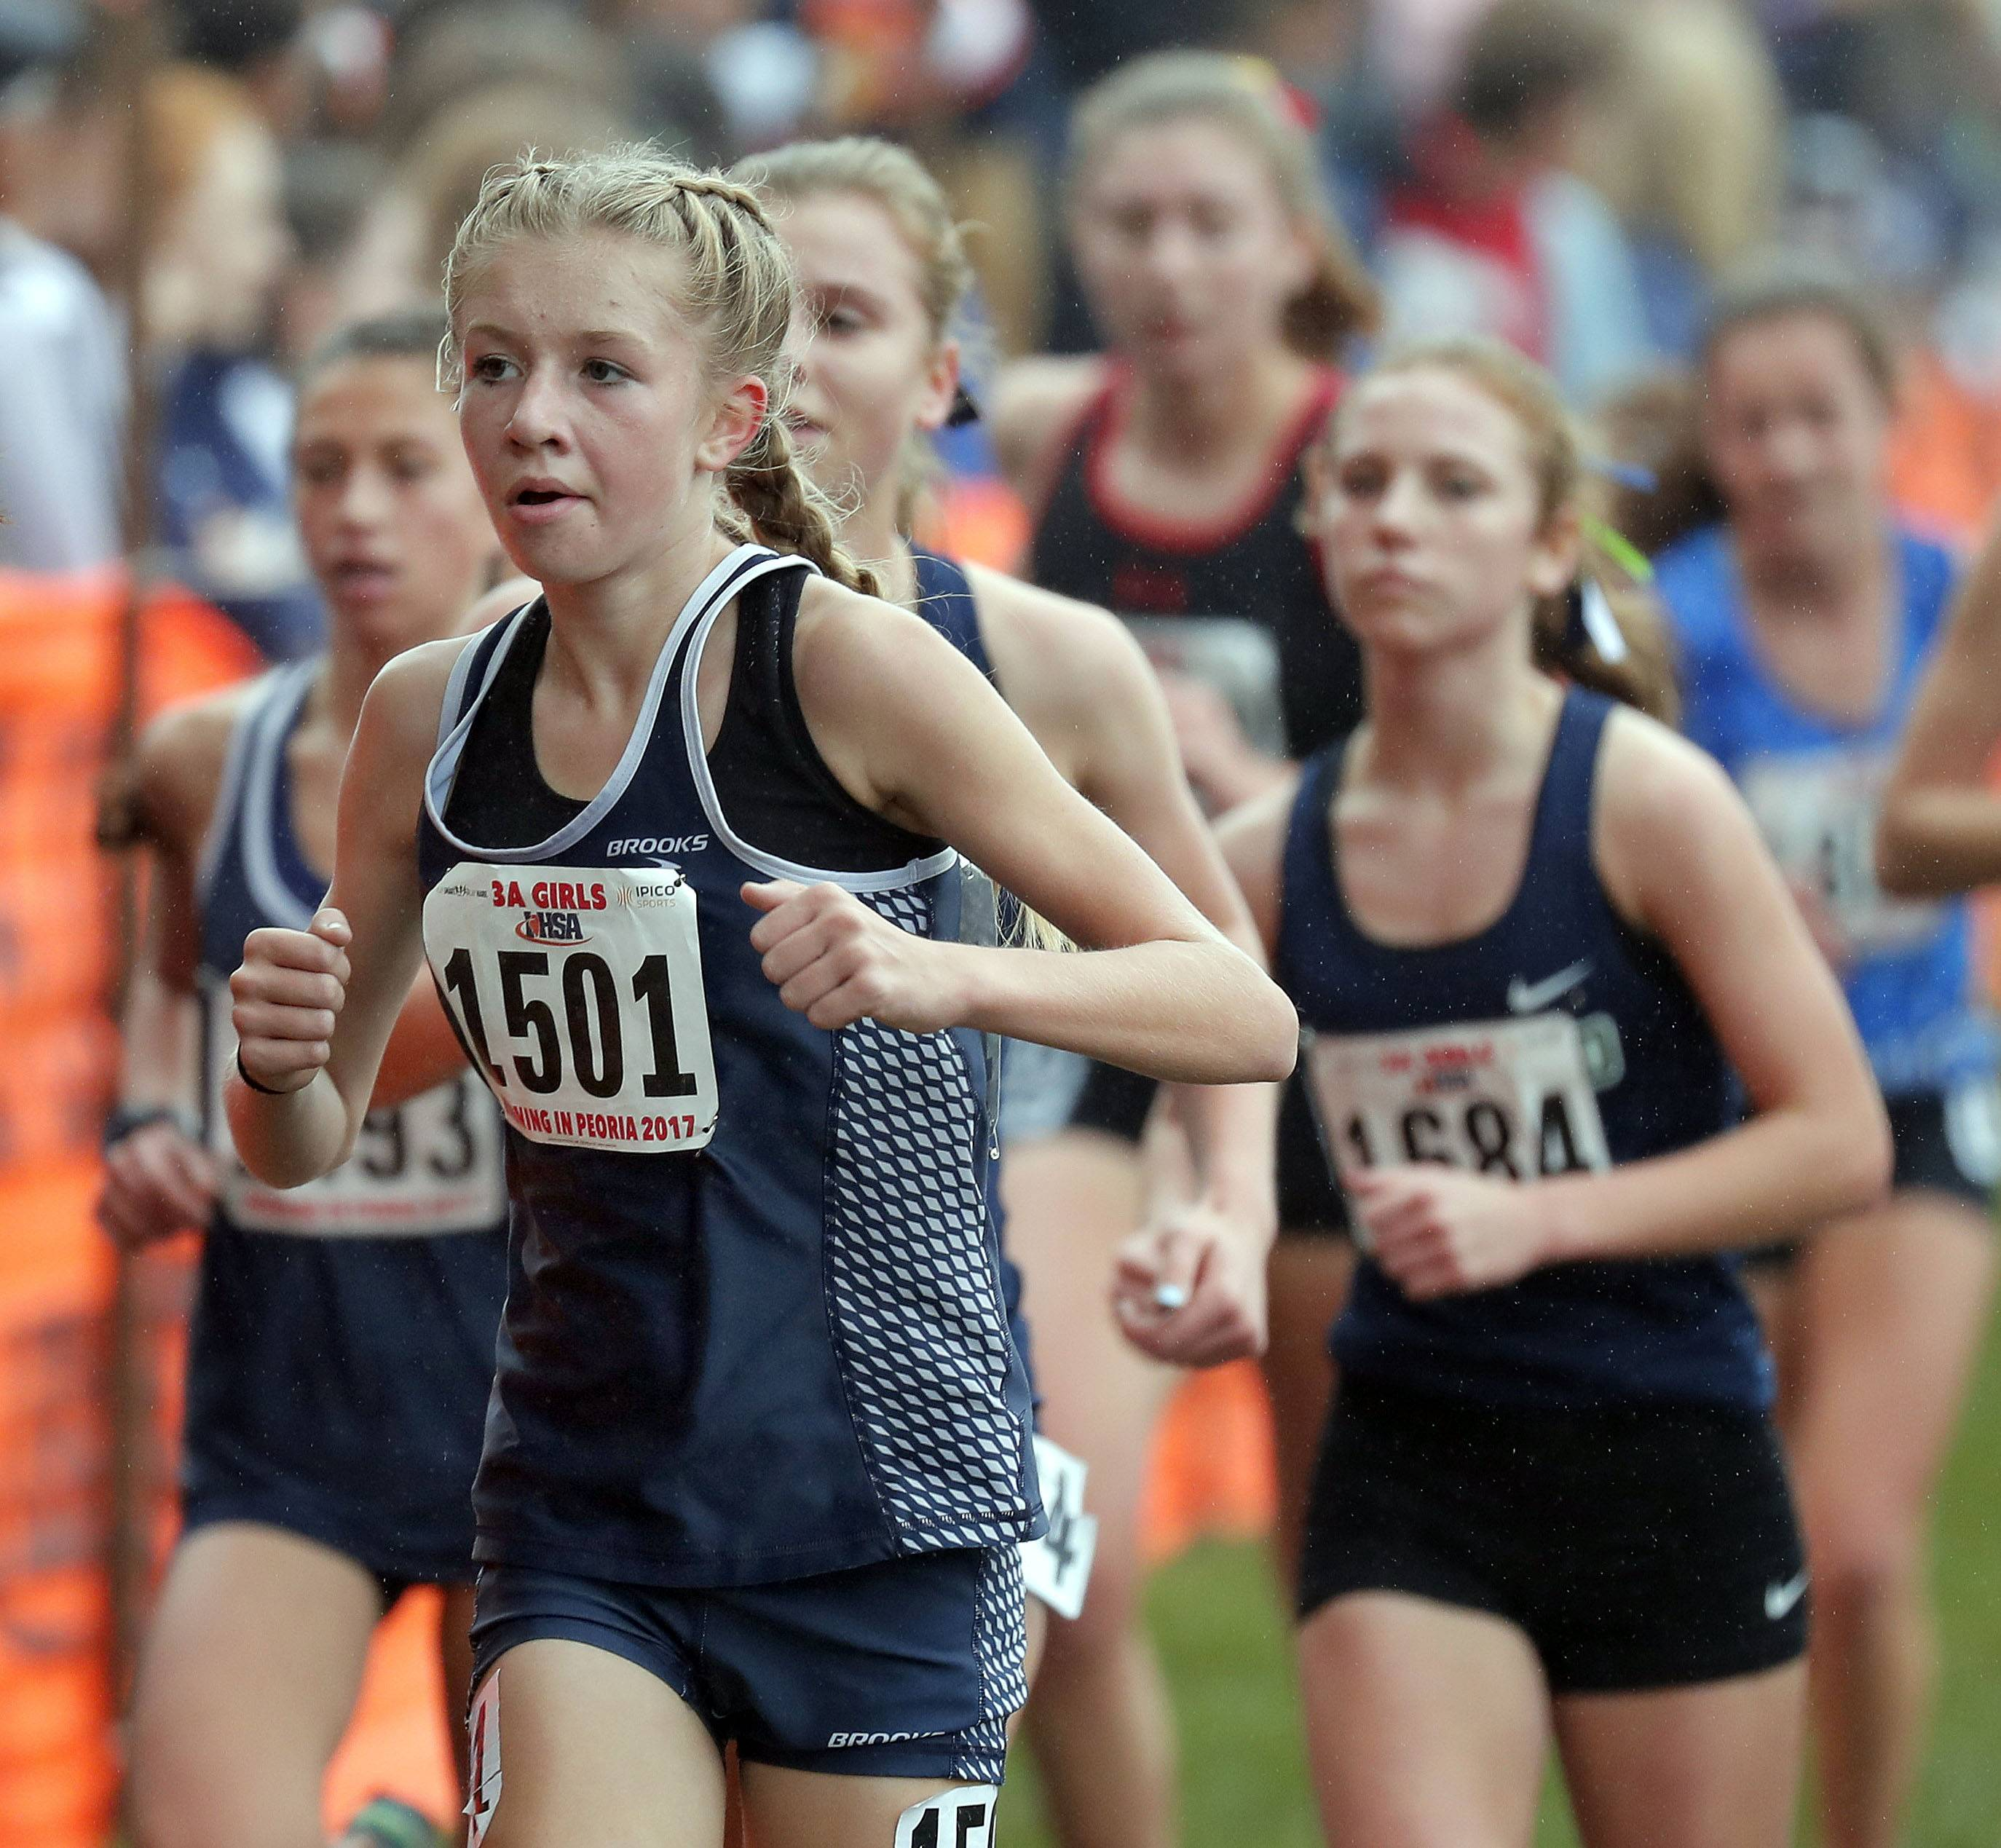 Cary Grove's Ellie Miller (1501) runs during the girls Class 3A cross country finals Saturday in Peoria.